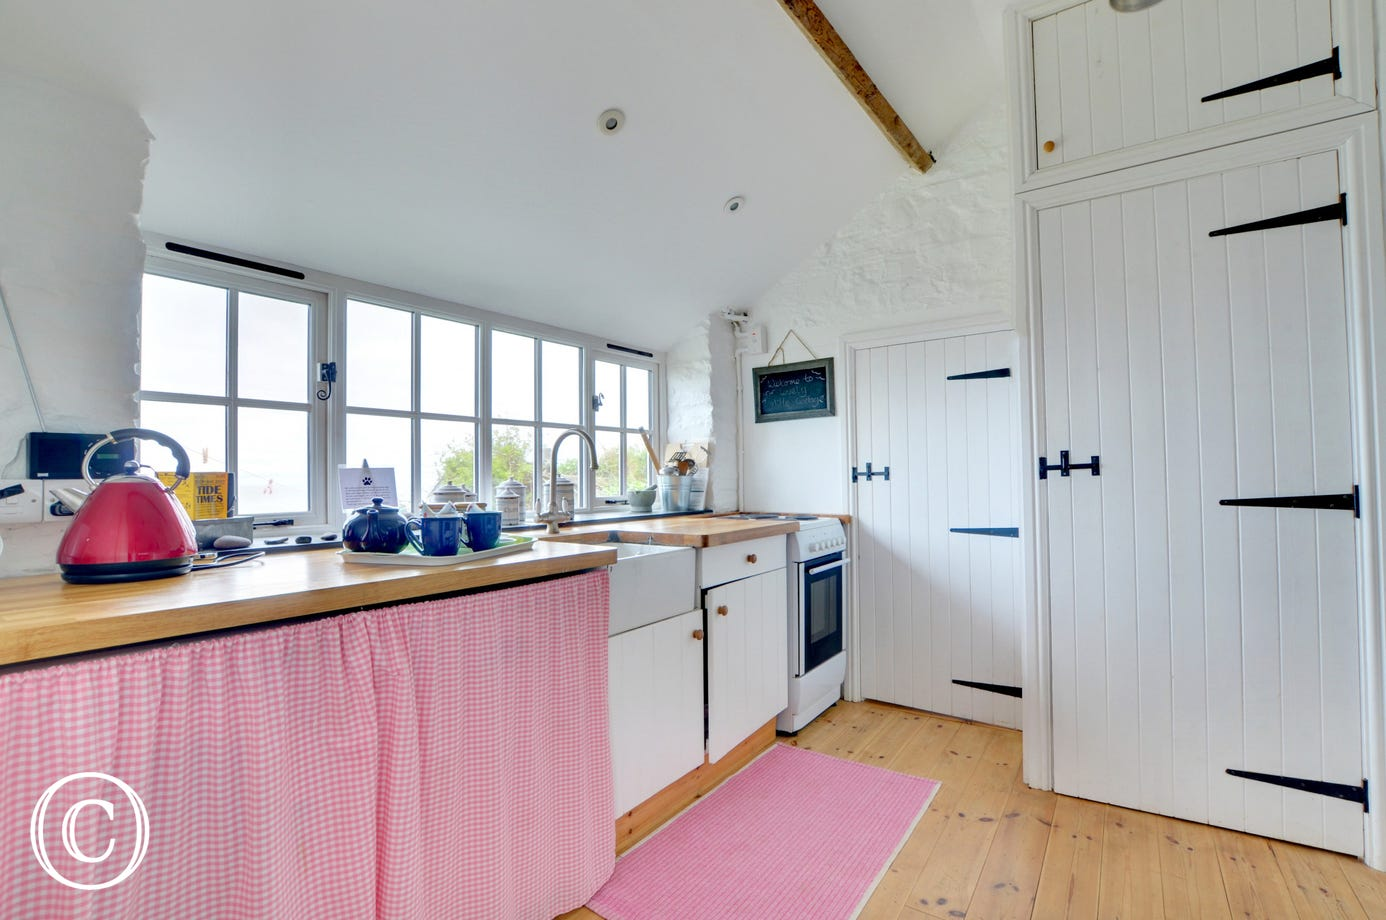 The kitchen has tremendous views from the windows, hard to take your eyes off whilst cooking!